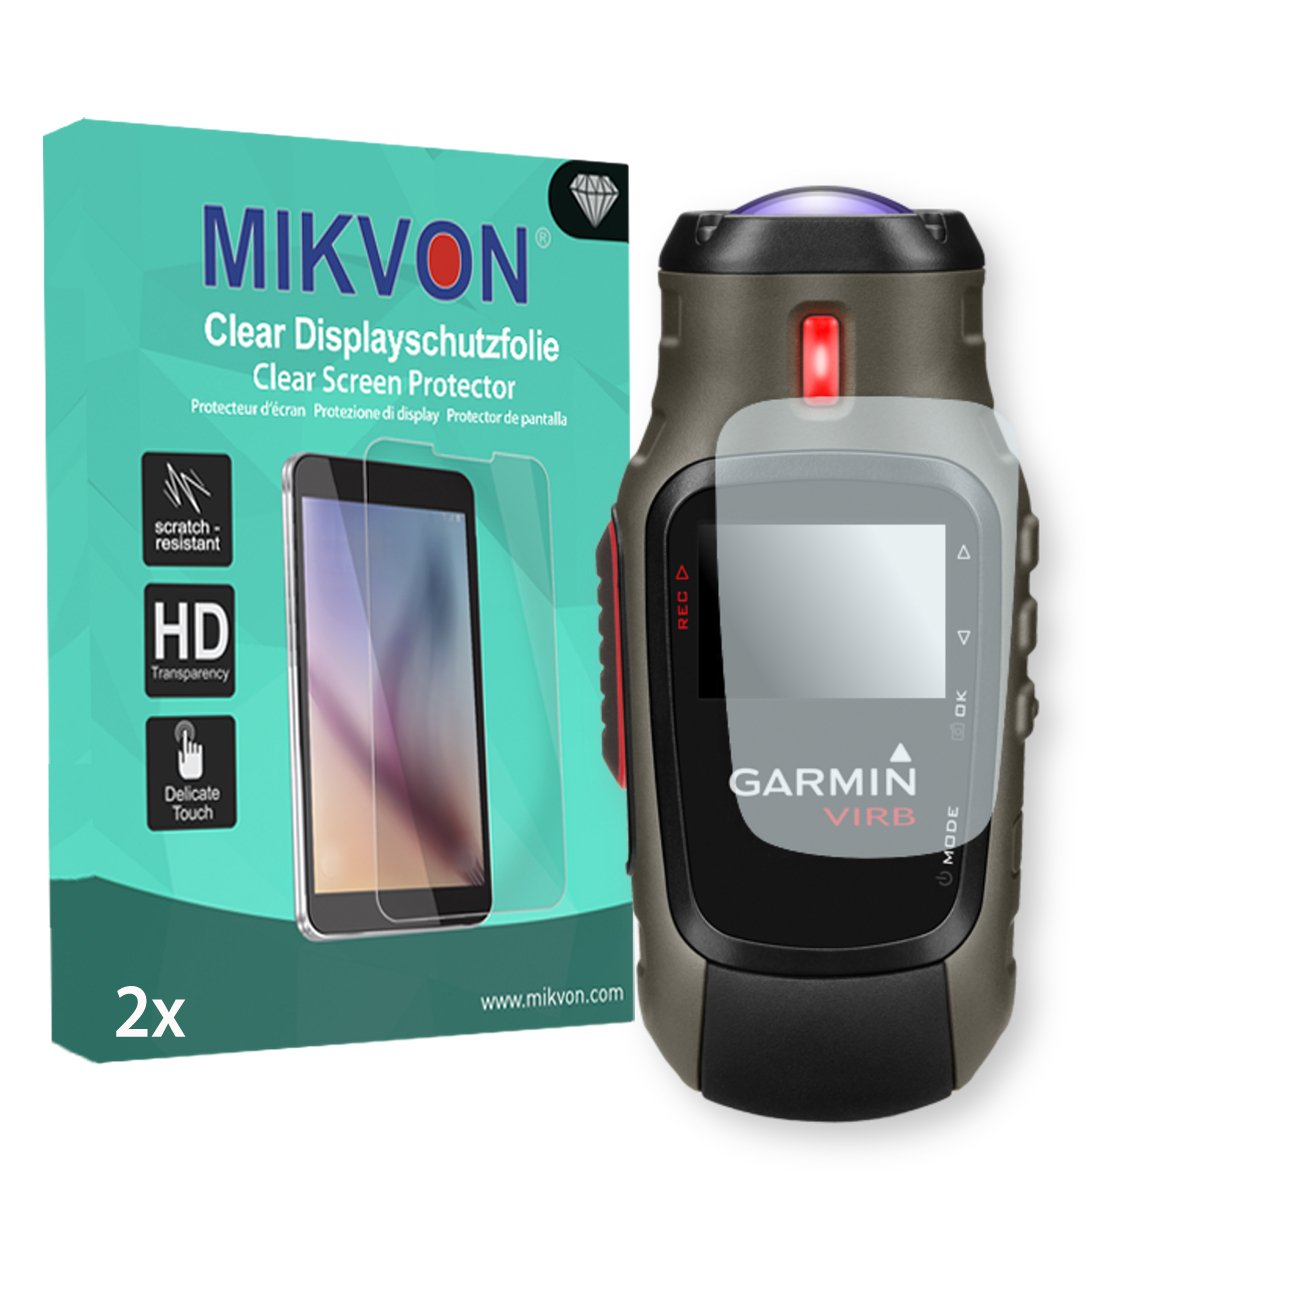 MIKVON 2X Clear Screen Protector for Garmin VIRB Elite - Retail Package with Accessories